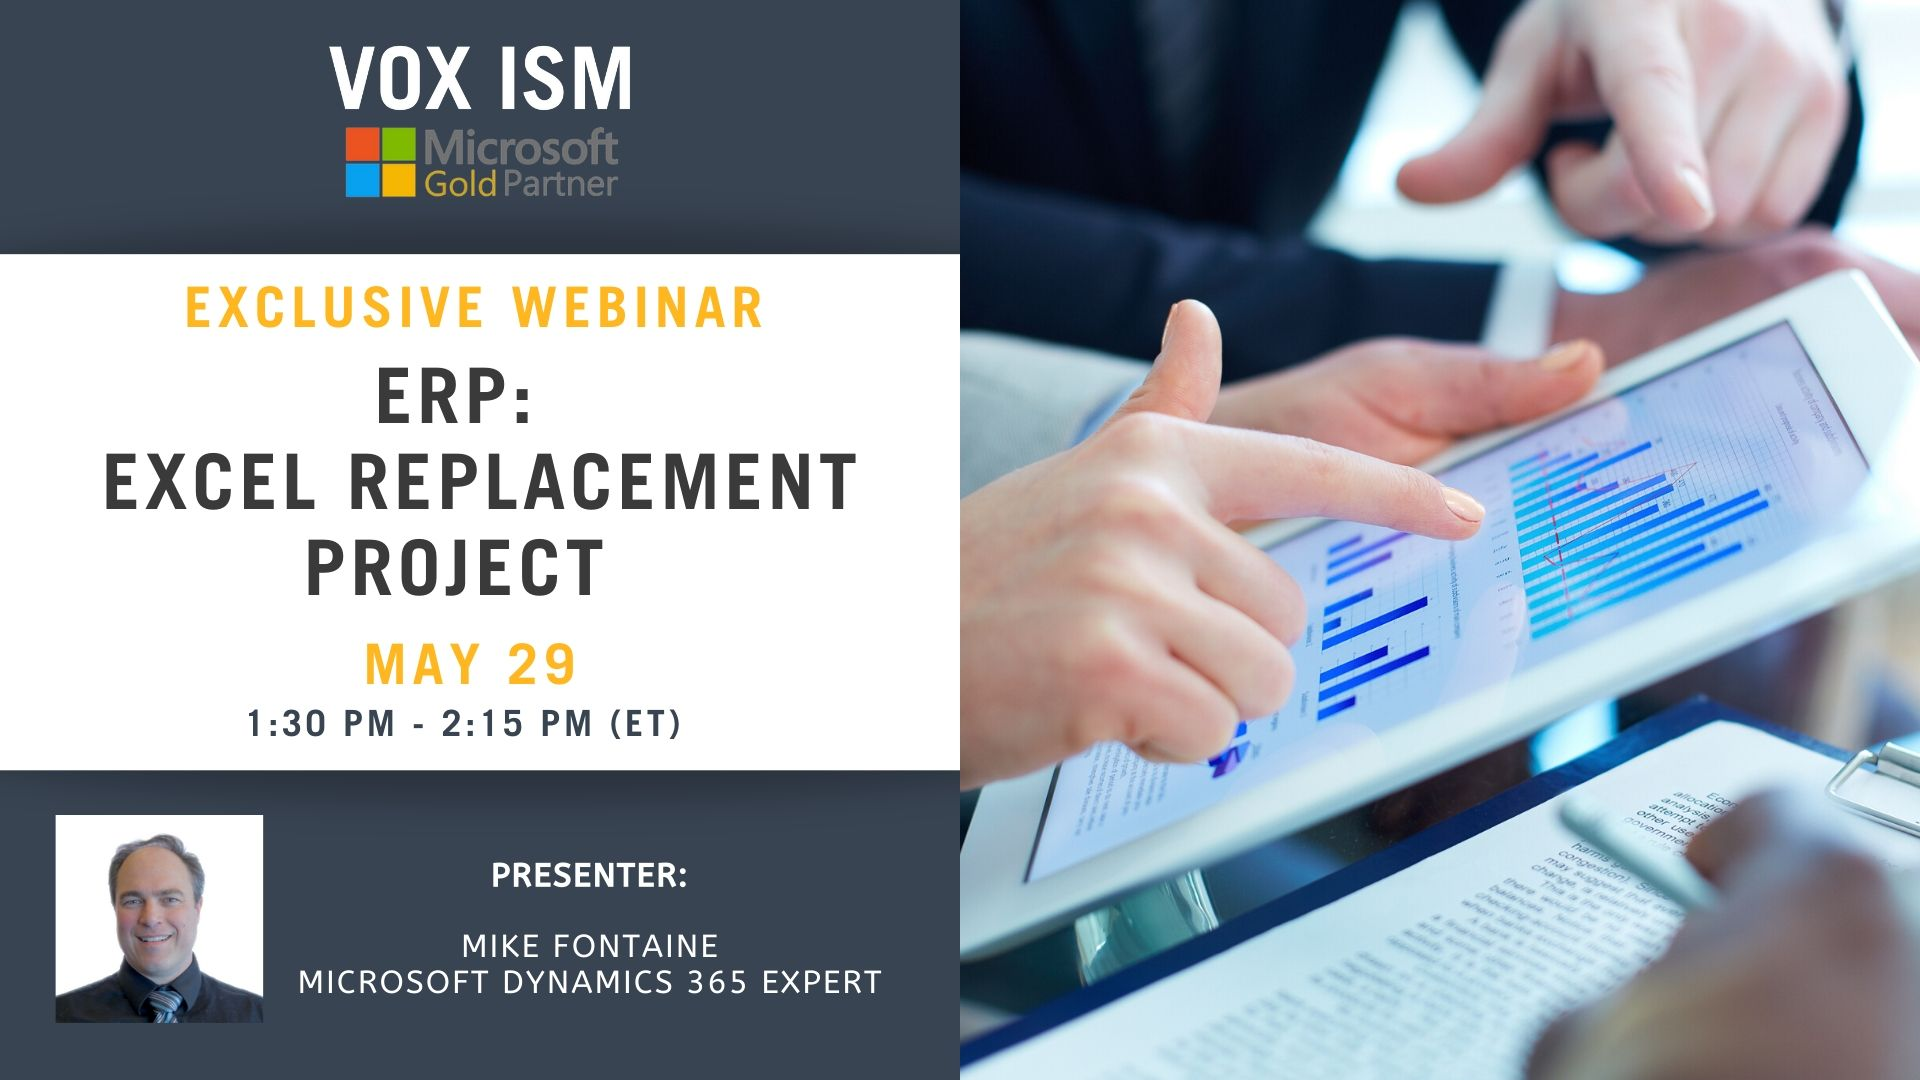 ERP: Excel Replacement Project - May 29 - Webinar VOX ISM